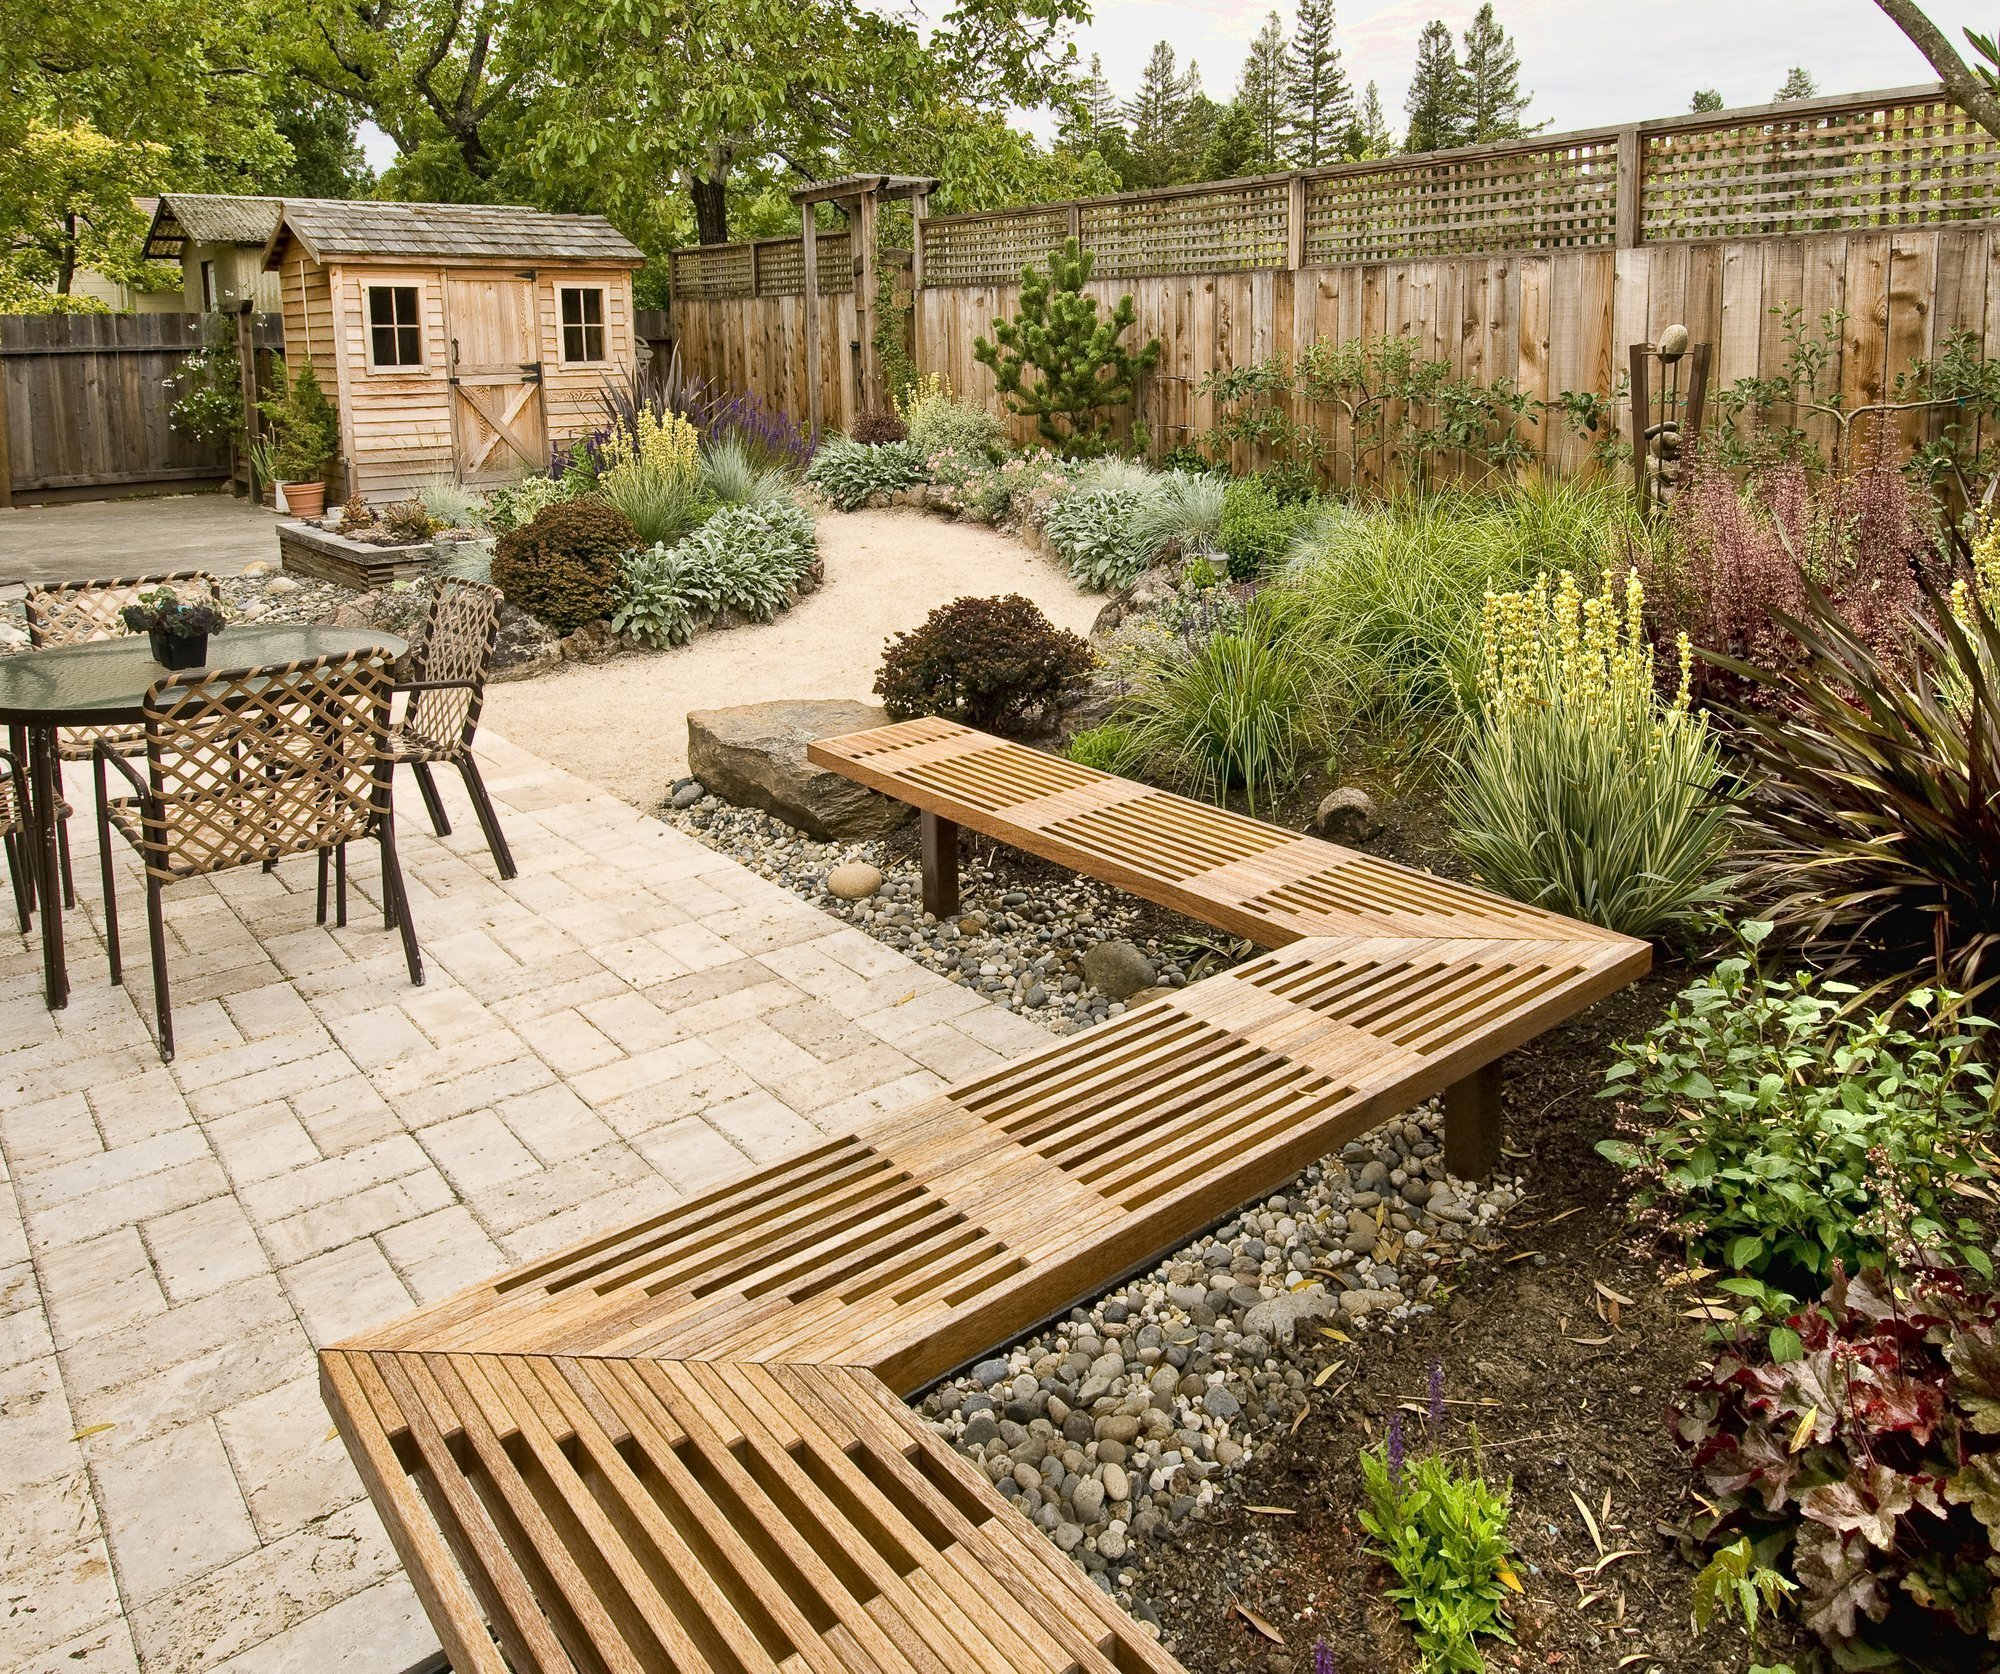 10 Steps on How to Make your Small Backyard Bigger and More Inviting